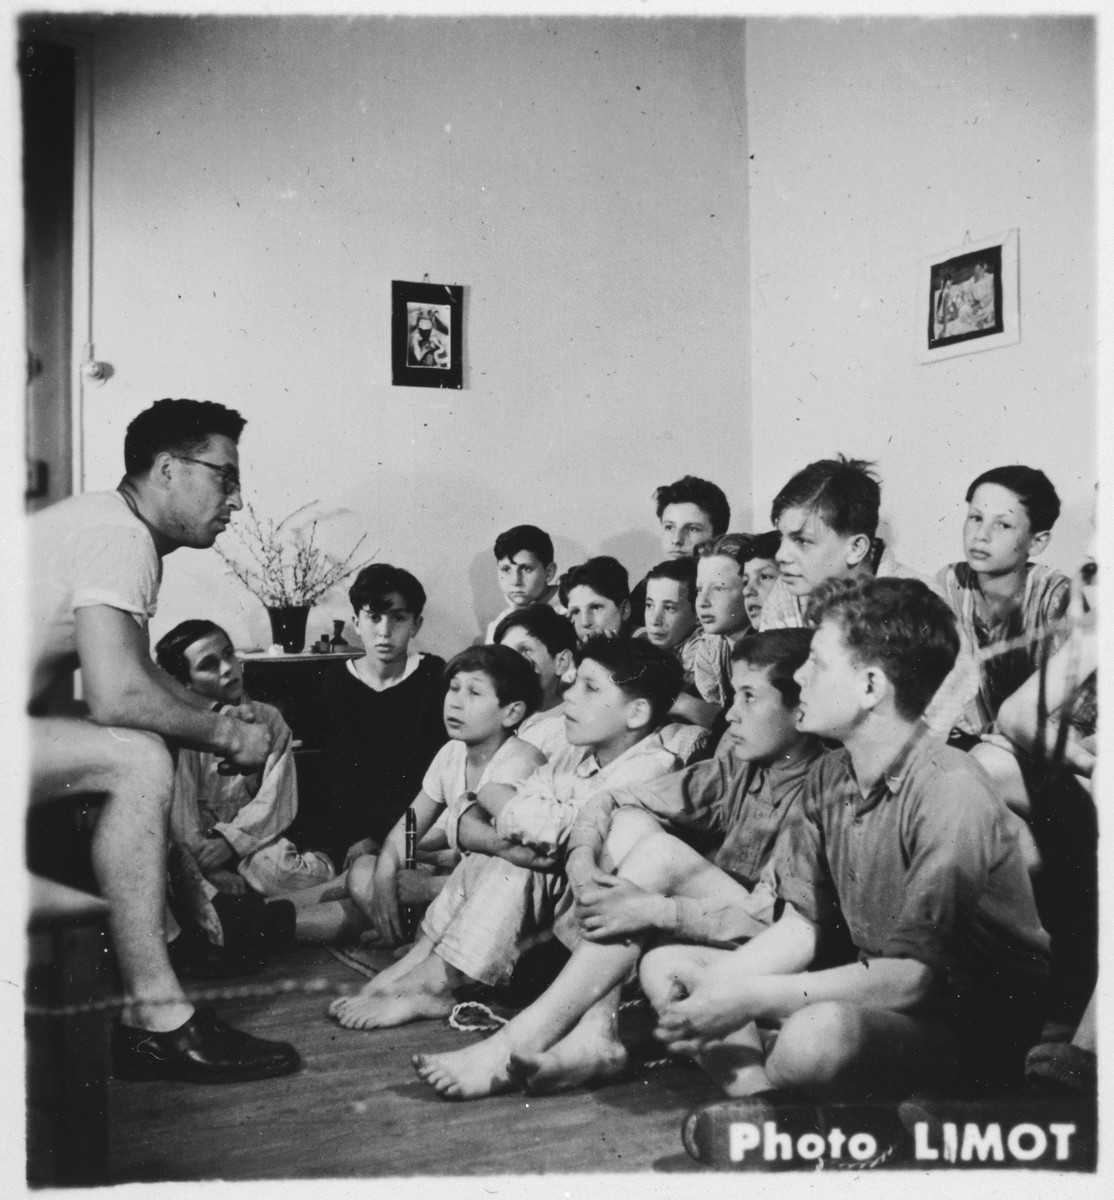 Boys in the Mehoncourt children's home meet with one of their counselors.  Albert Rigman is seated on the far right.